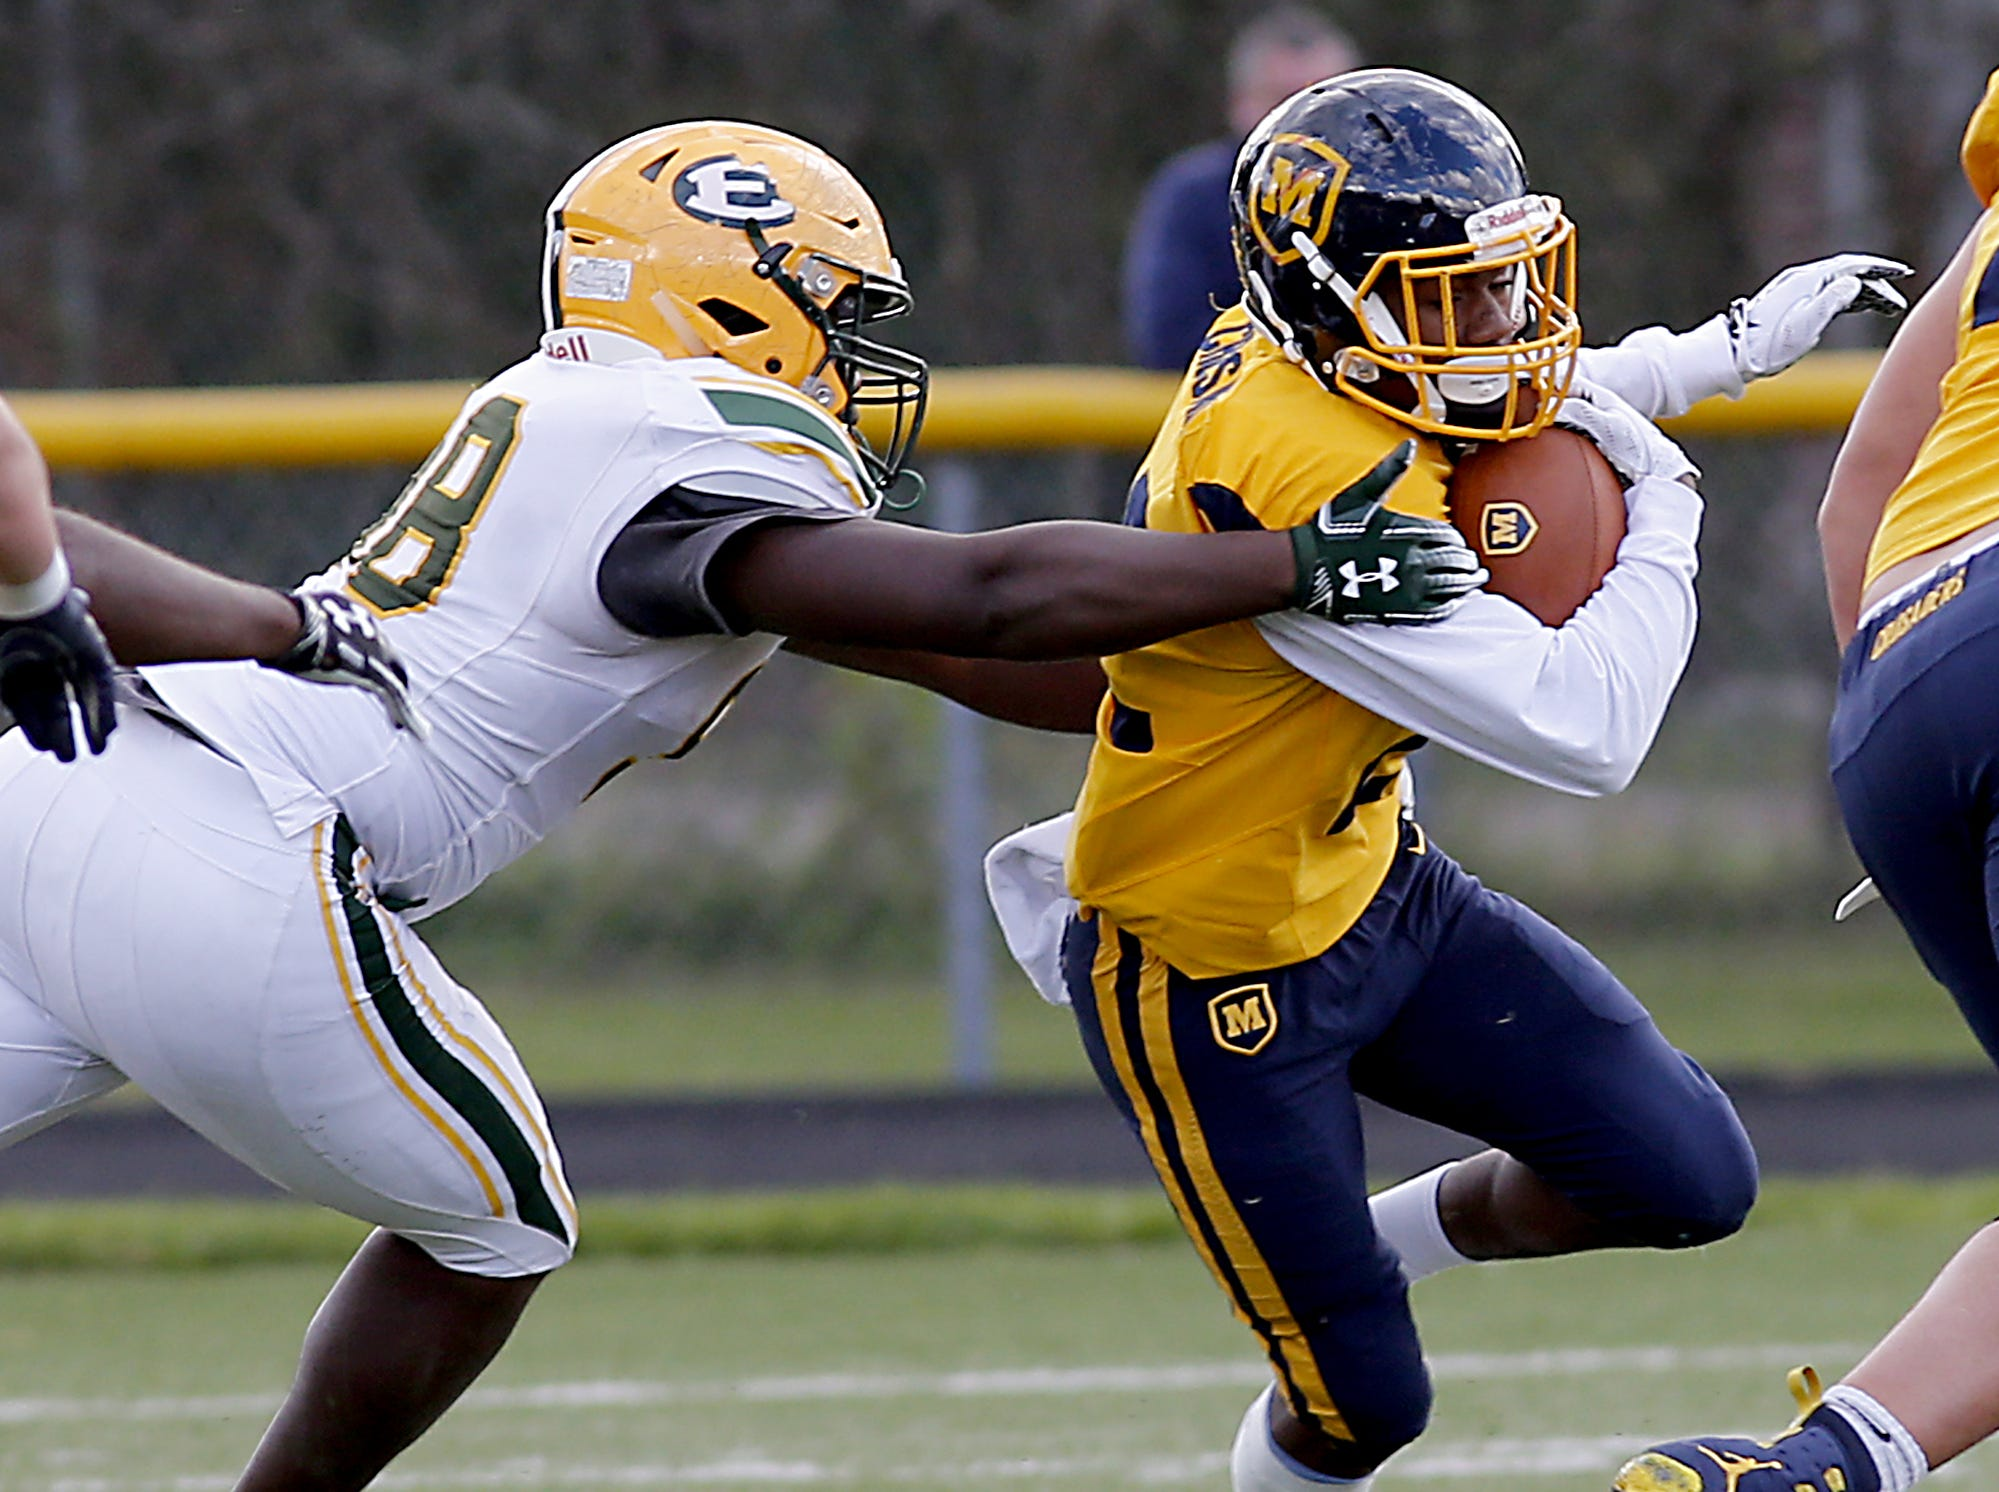 Moeller running back Bryan White is caught by Lakewood St. Edward lineman Terron Lee during their game at Lockland Saturday, Oct. 20, 2018. E.L. Hubbard for the Enquirer